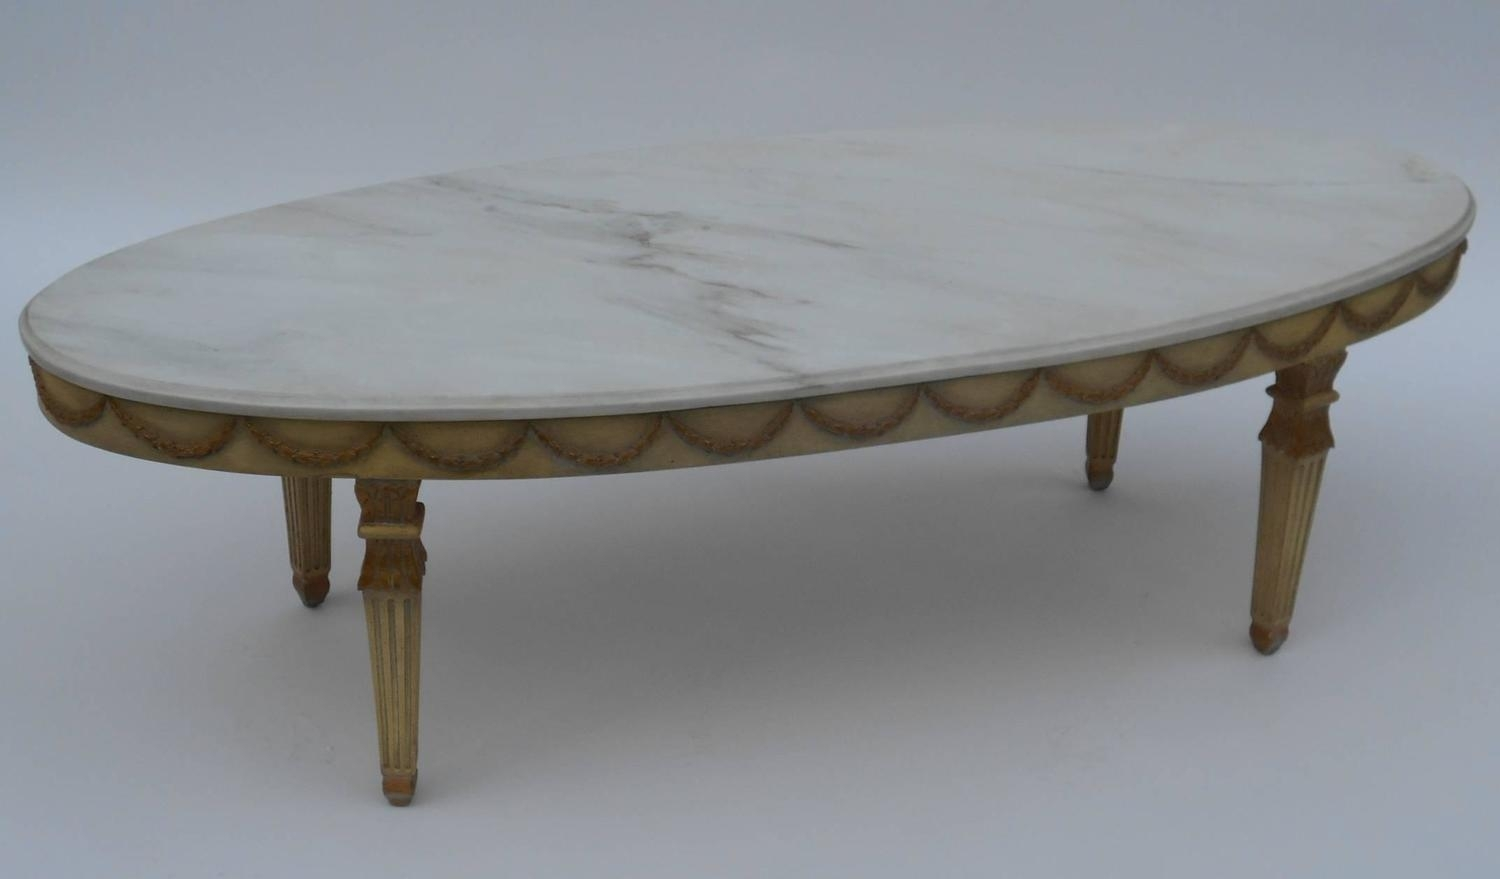 Italian Marble Top Coffee Table At 1Stdibs regarding Smart Round Marble Top Coffee Tables (Image 16 of 30)